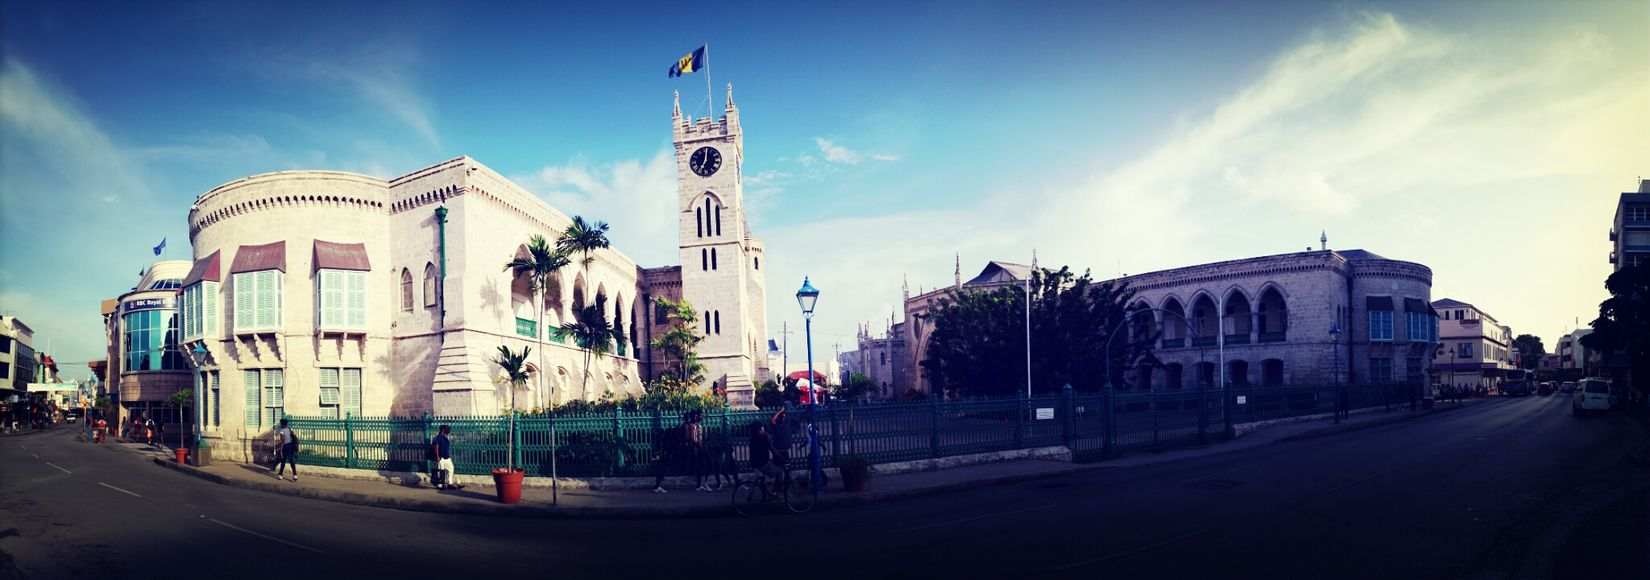 Parliament Building. Barbados Architecture NEXTshotPhotos Eye4photography